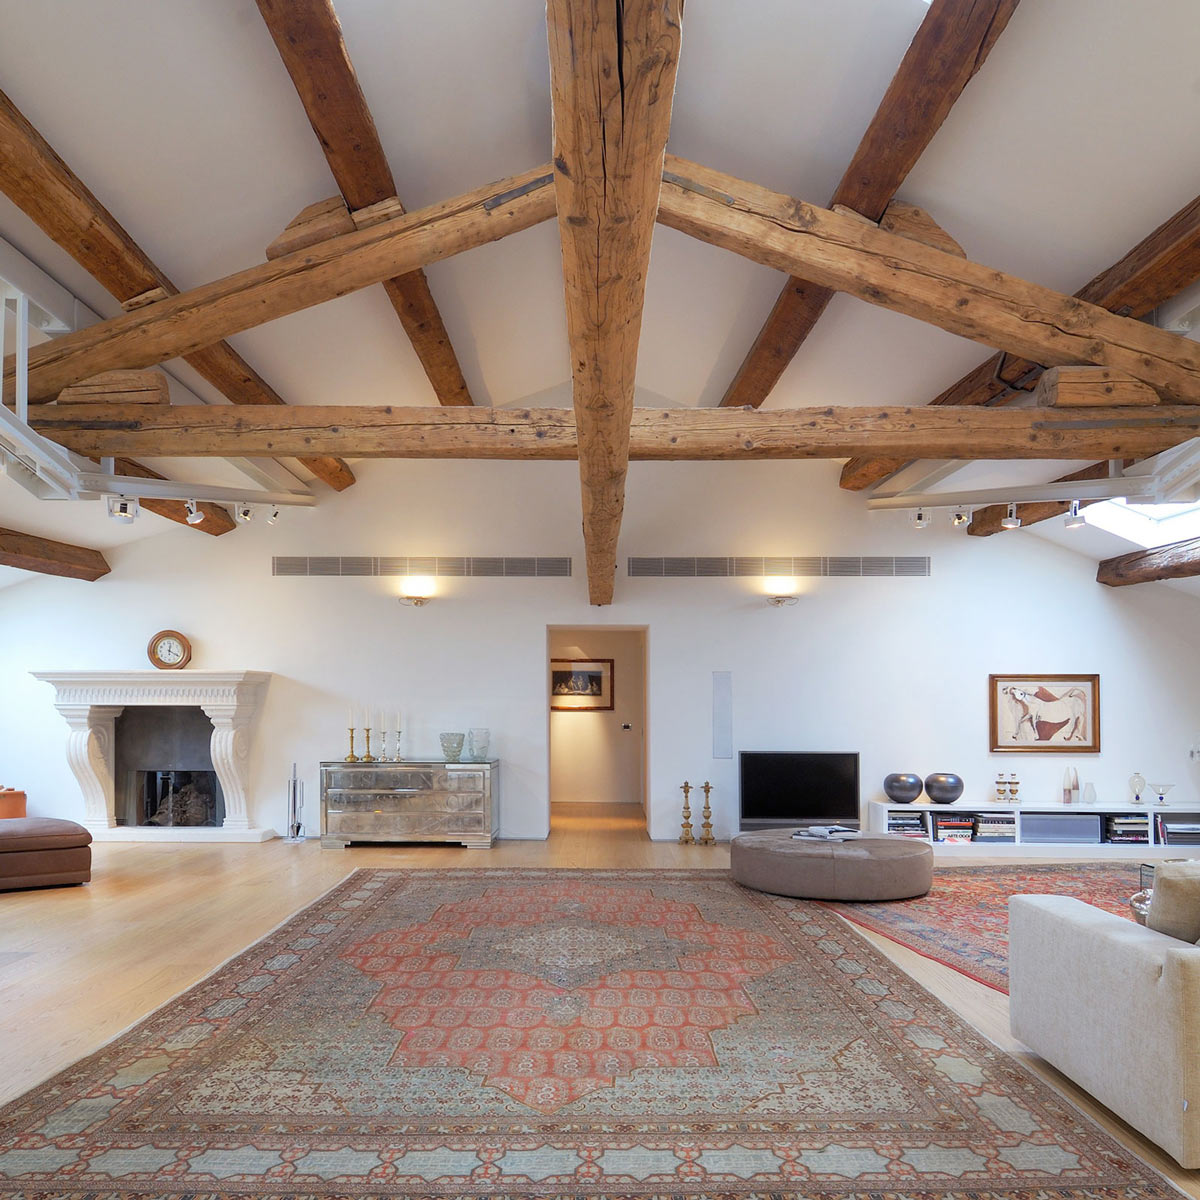 Fireplace, Rug, Living Space, Penthouse in Udine, Italy by Menzo Architettura & Design